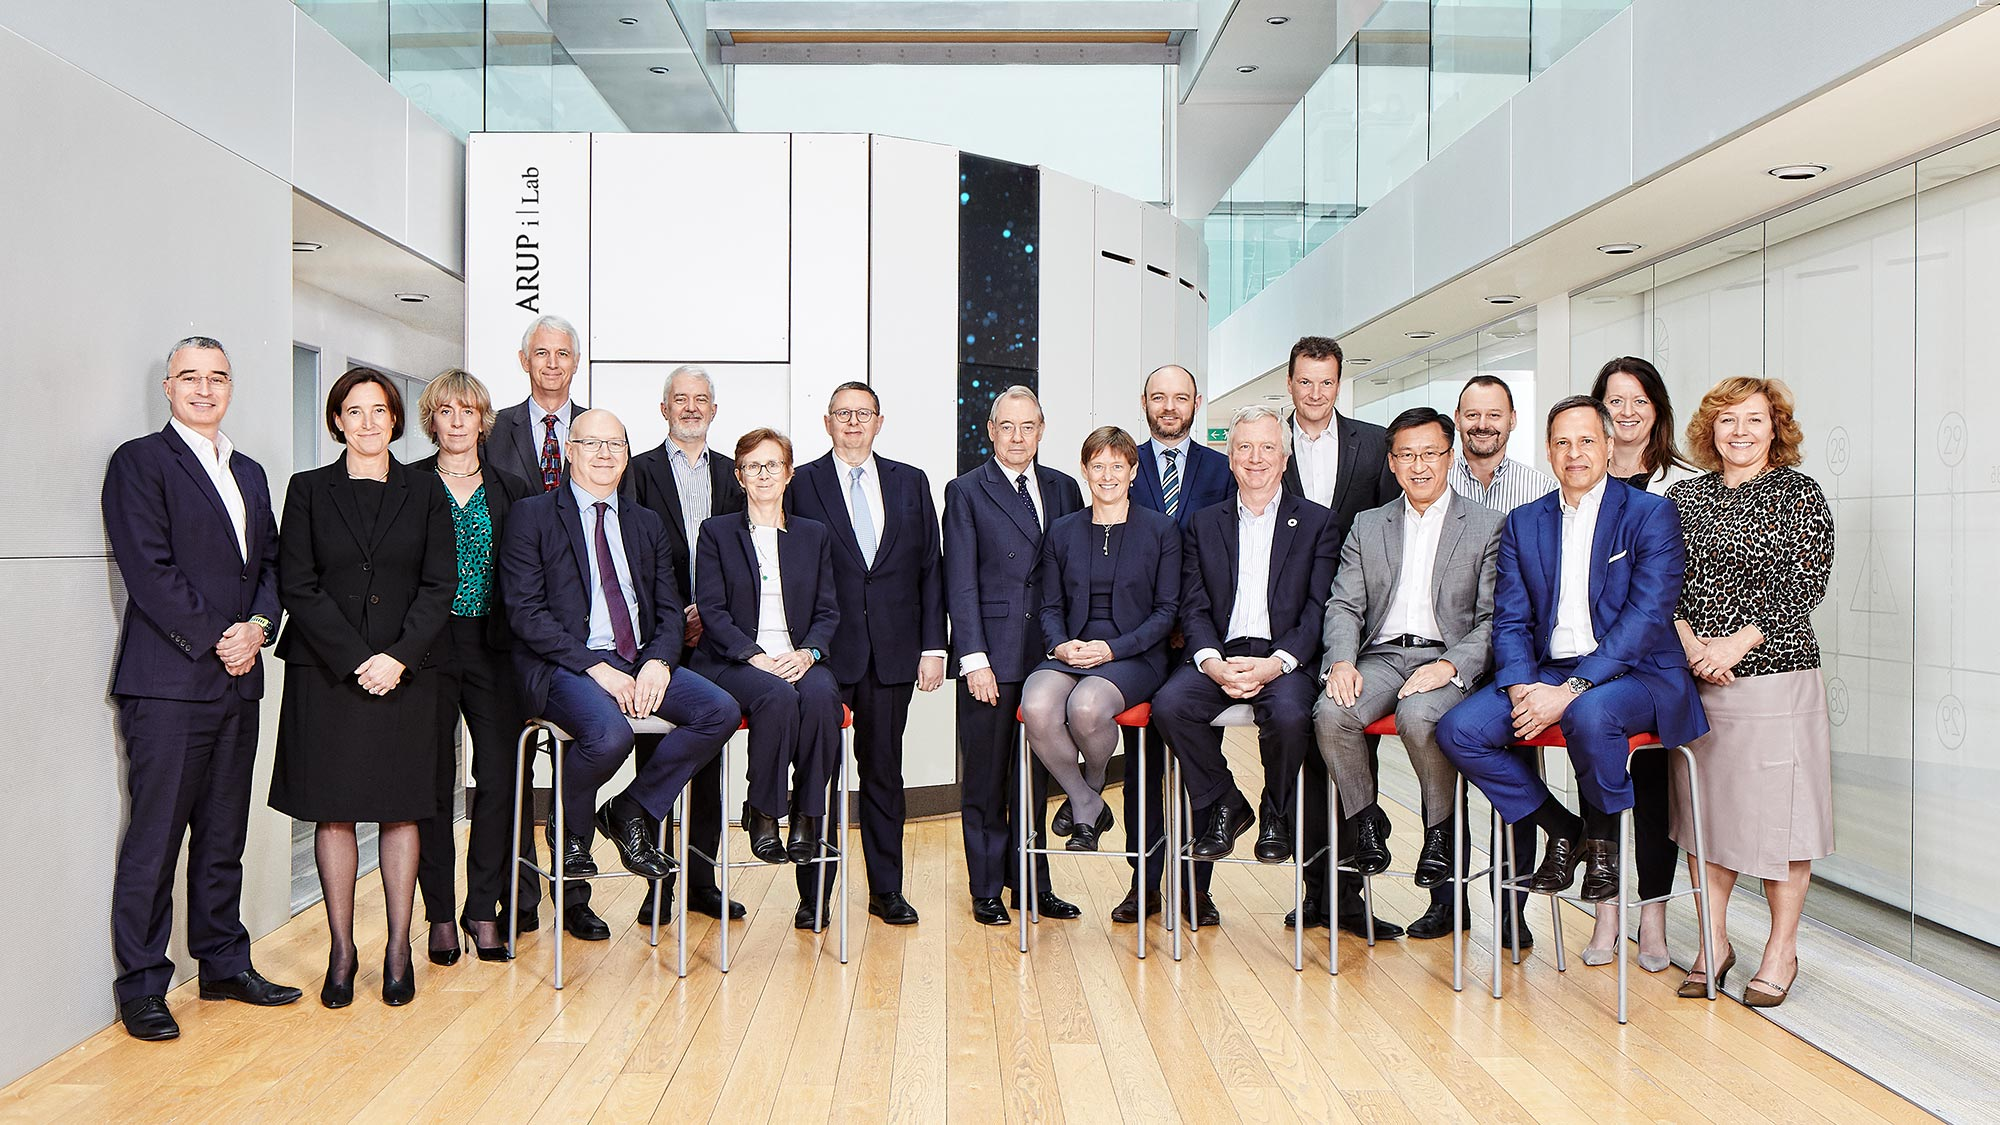 Arup's leadership team